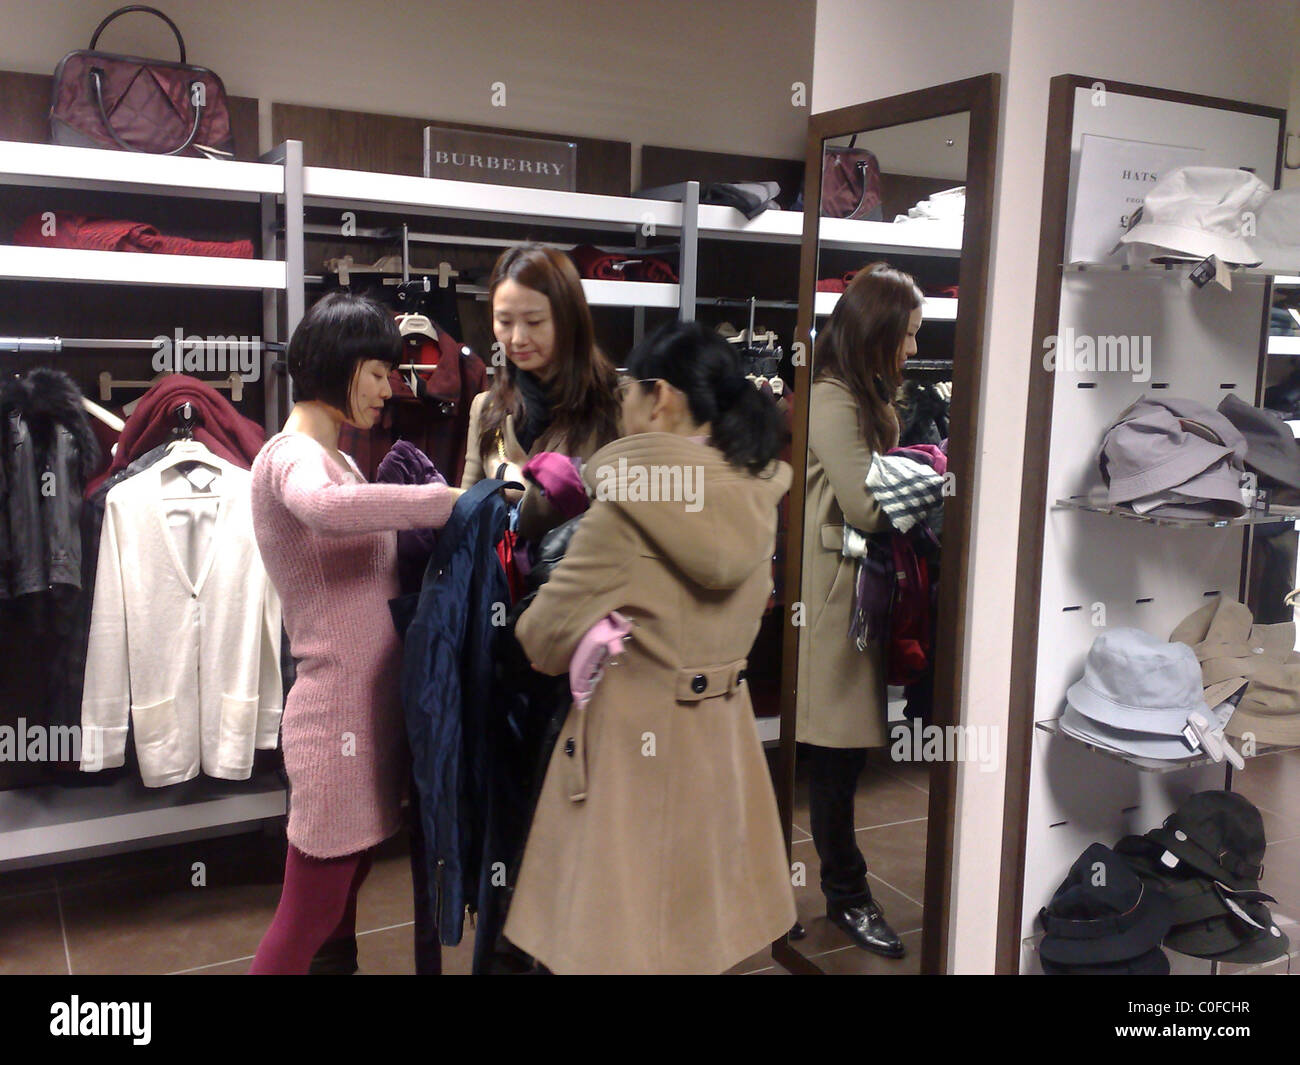 burrbery outlet qbu1  CHINESE SHOPPERS AT BURBERRY OUTLET DISCOUNT STORE IN HACKNEY, LONDON